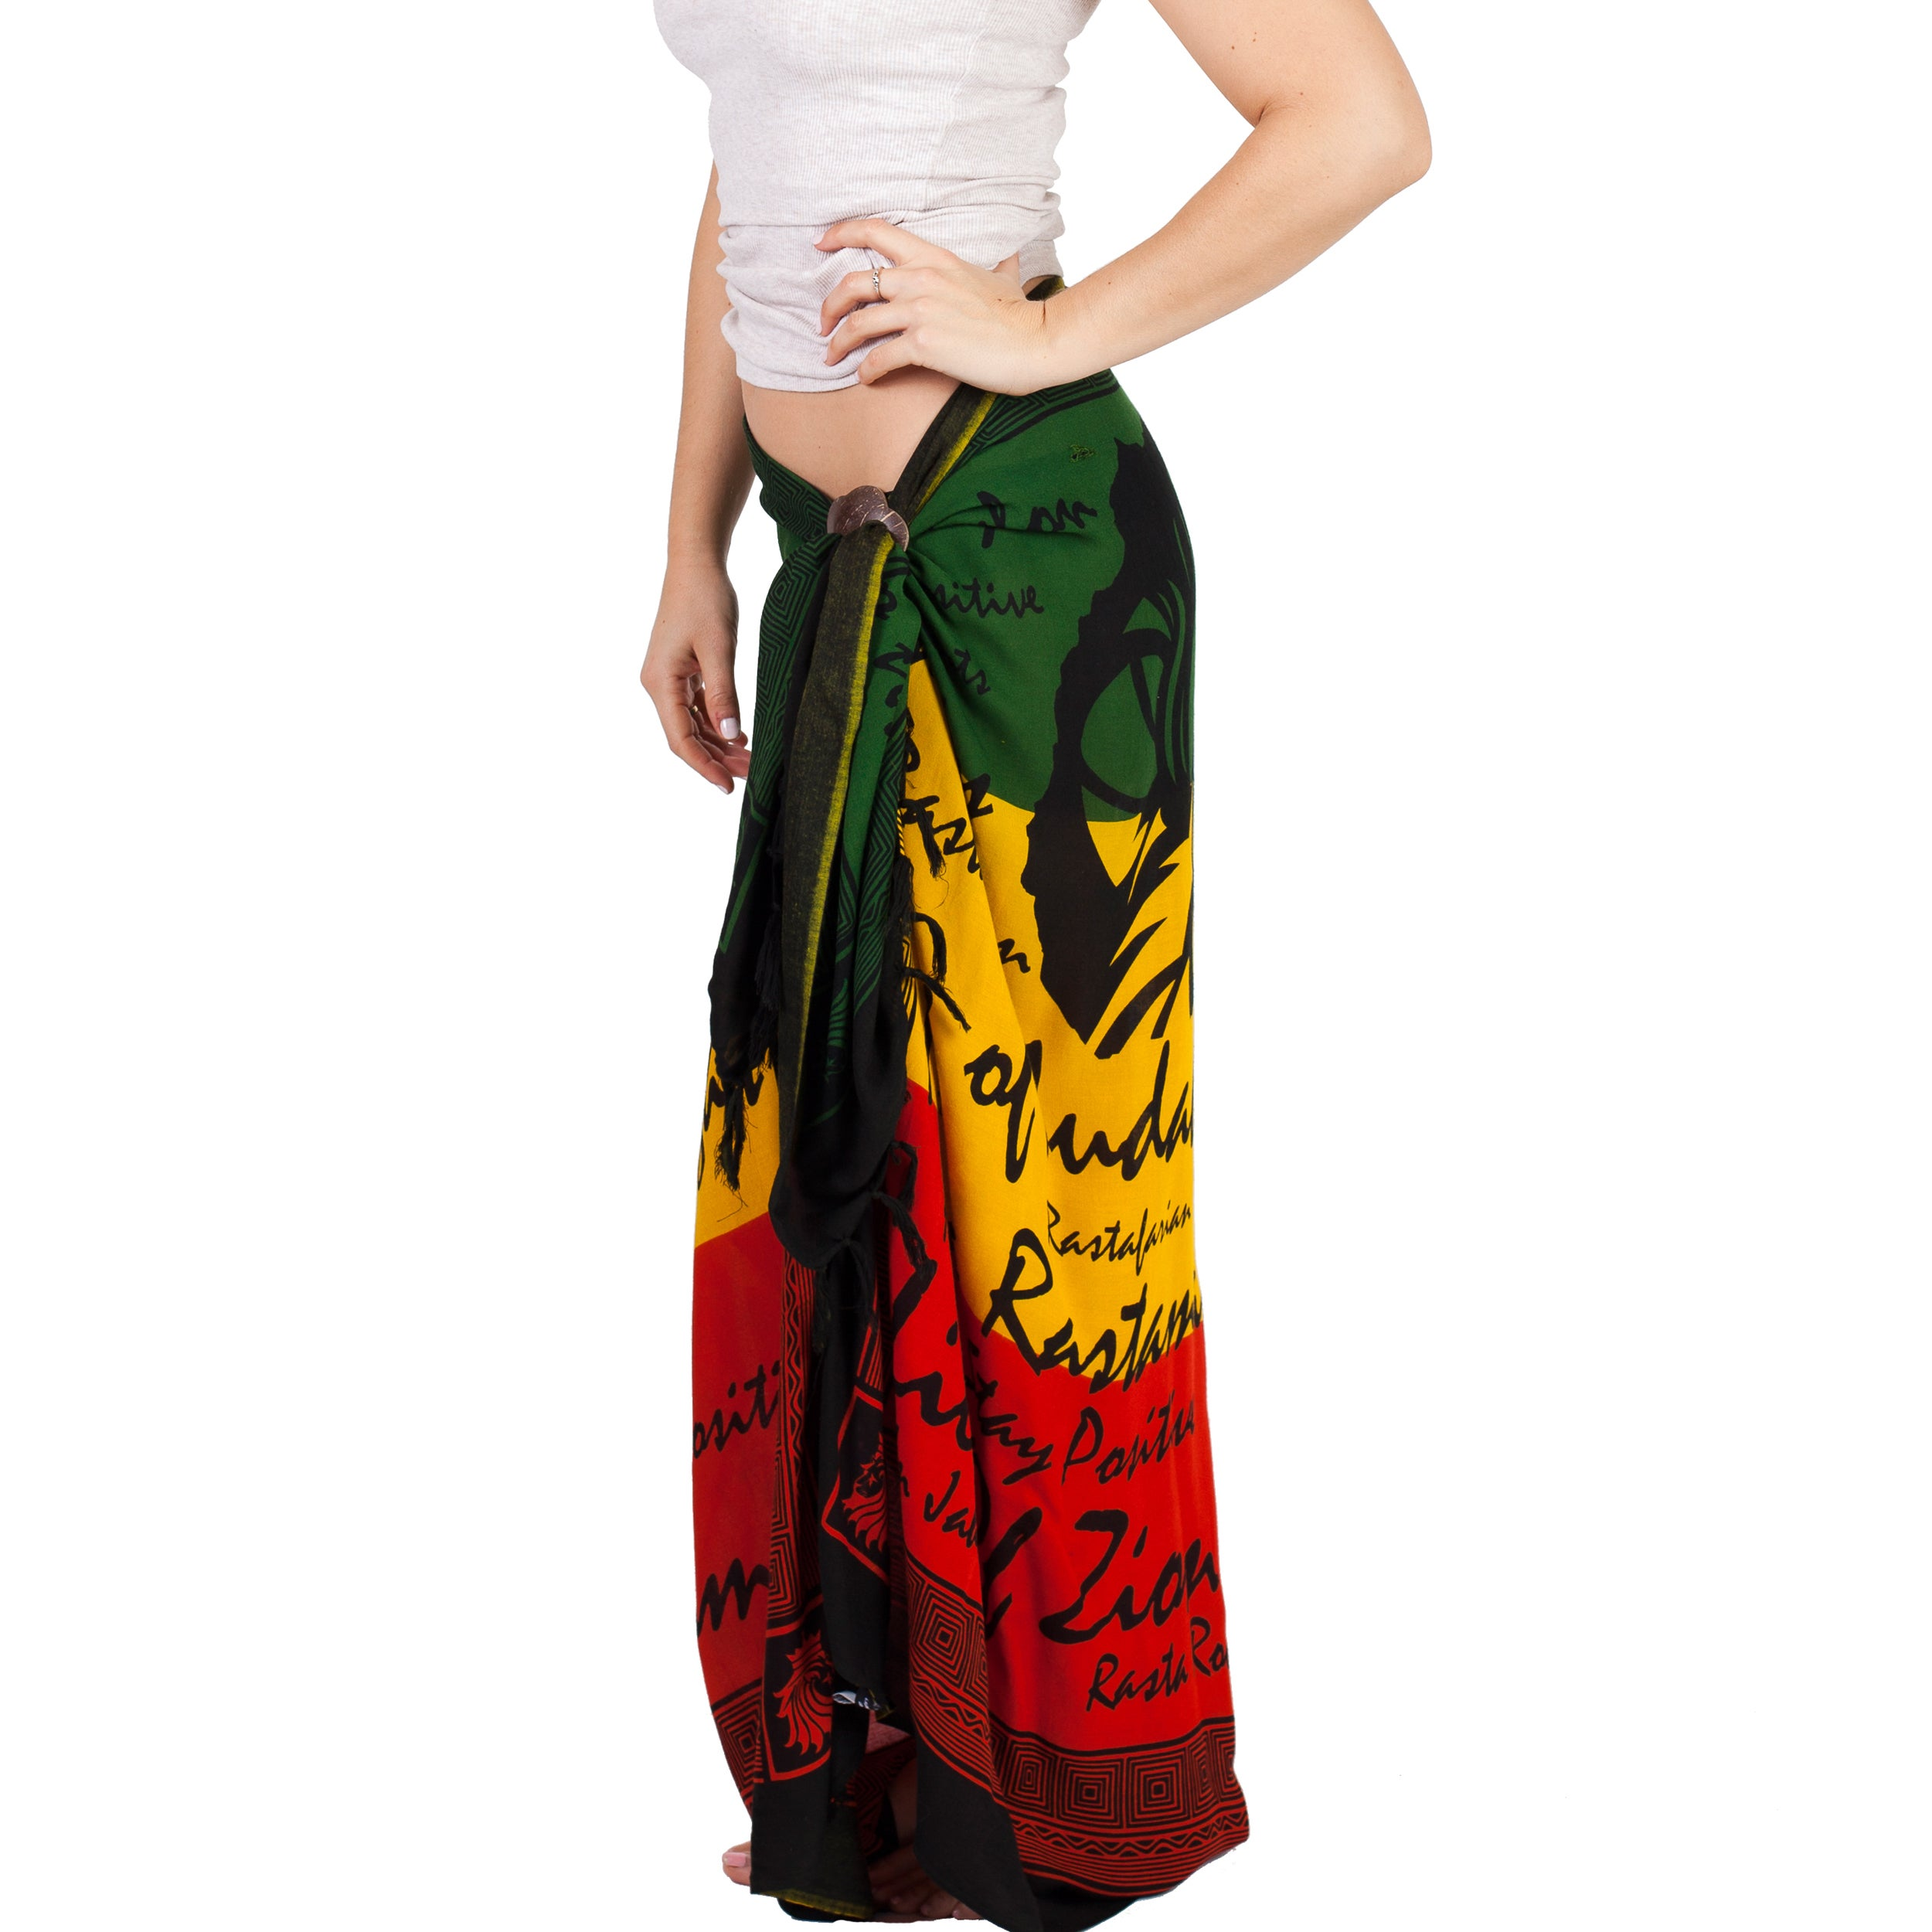 d423264aa8 Shop Handmade Women s Rasta Reggae Jah Lion Africa Cover Up Sarong  (Indonesia) - Free Shipping On Orders Over  45 - Overstock - 14356732